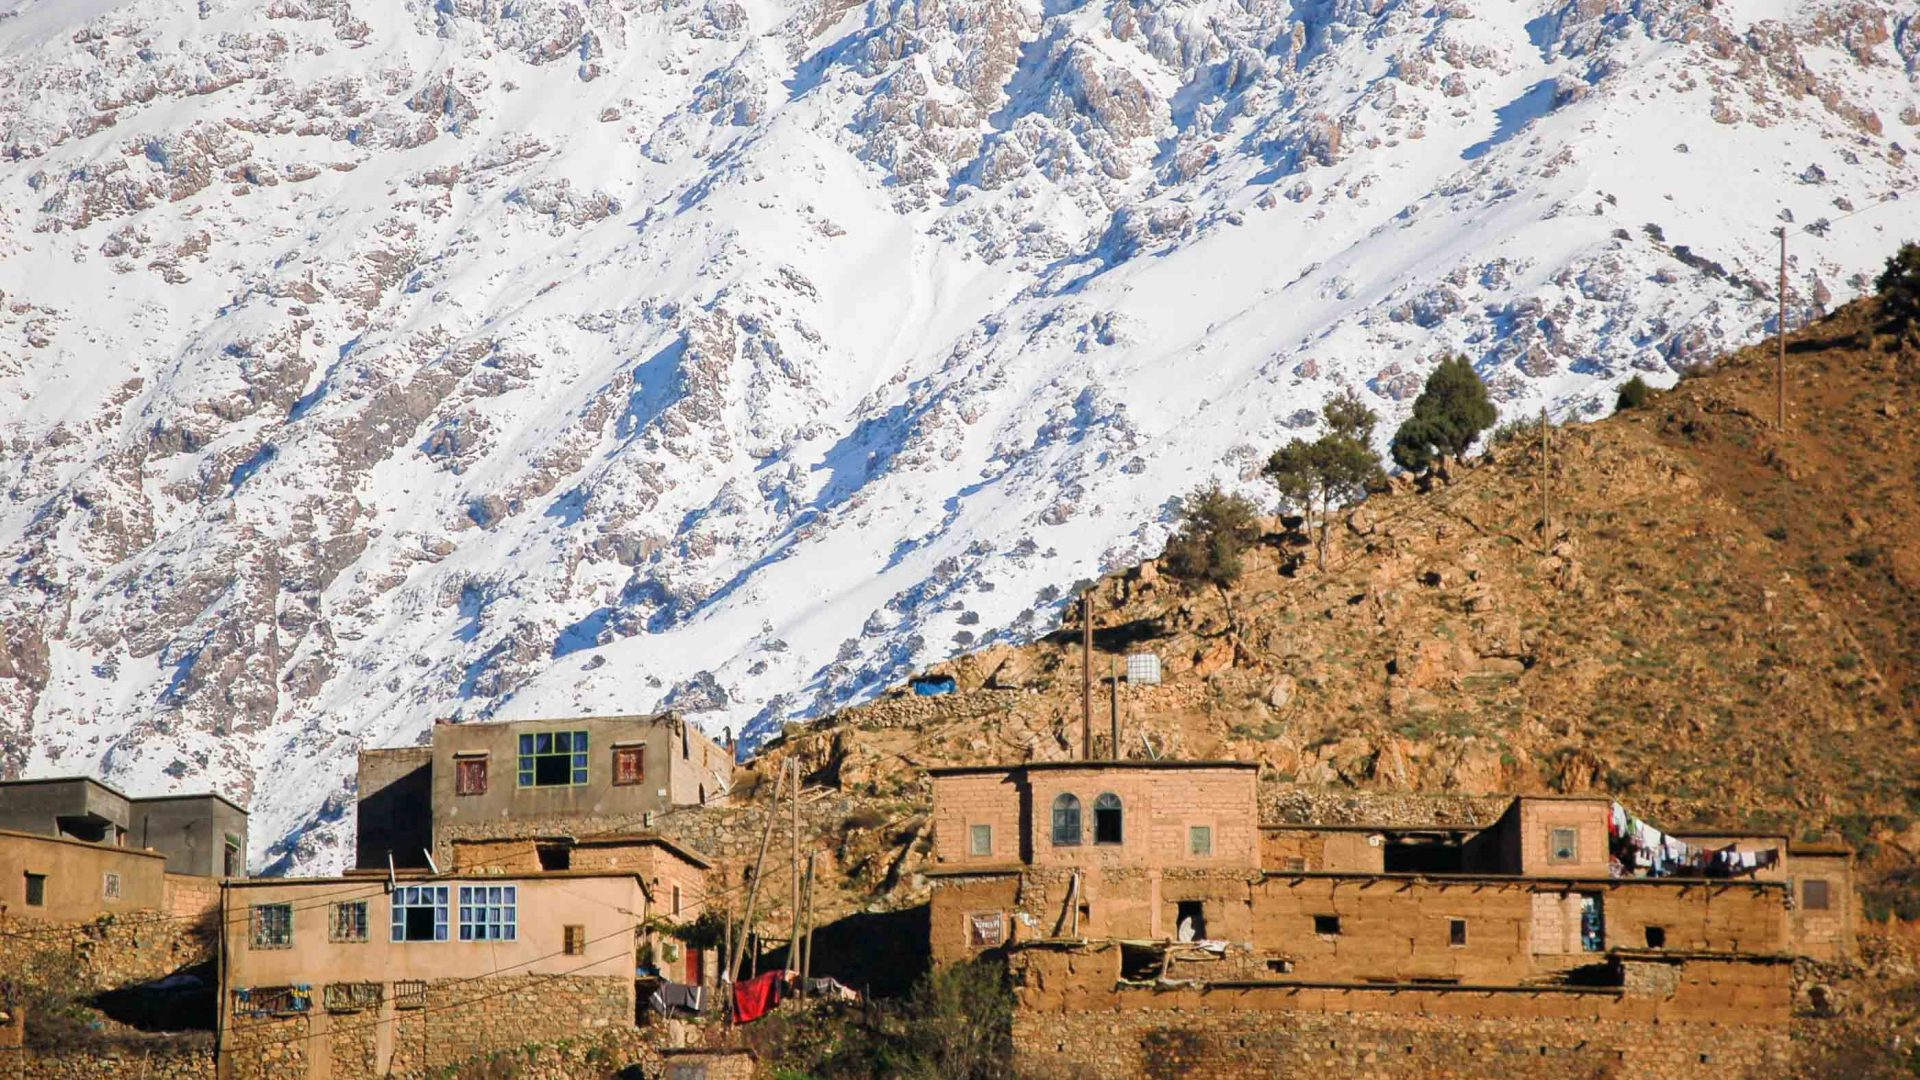 A Berber village in front of snowy mountains.